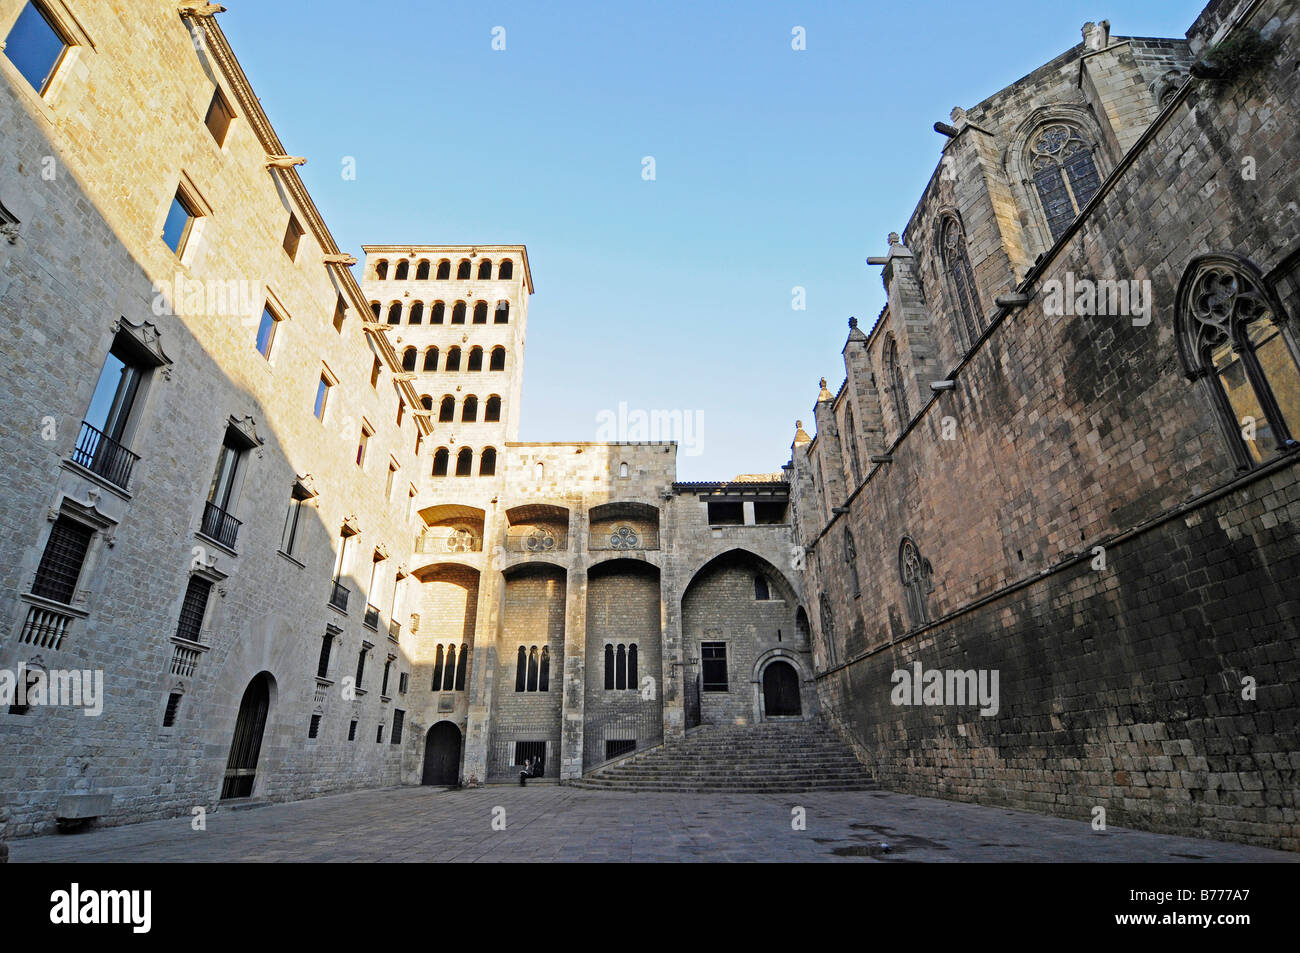 Palau Reial Mayor, Santa Agatha Chapel, Placa del Rei, Plaza, Barri Gotic, Barcelona, Catalonia, Spain, Europe - Stock Image